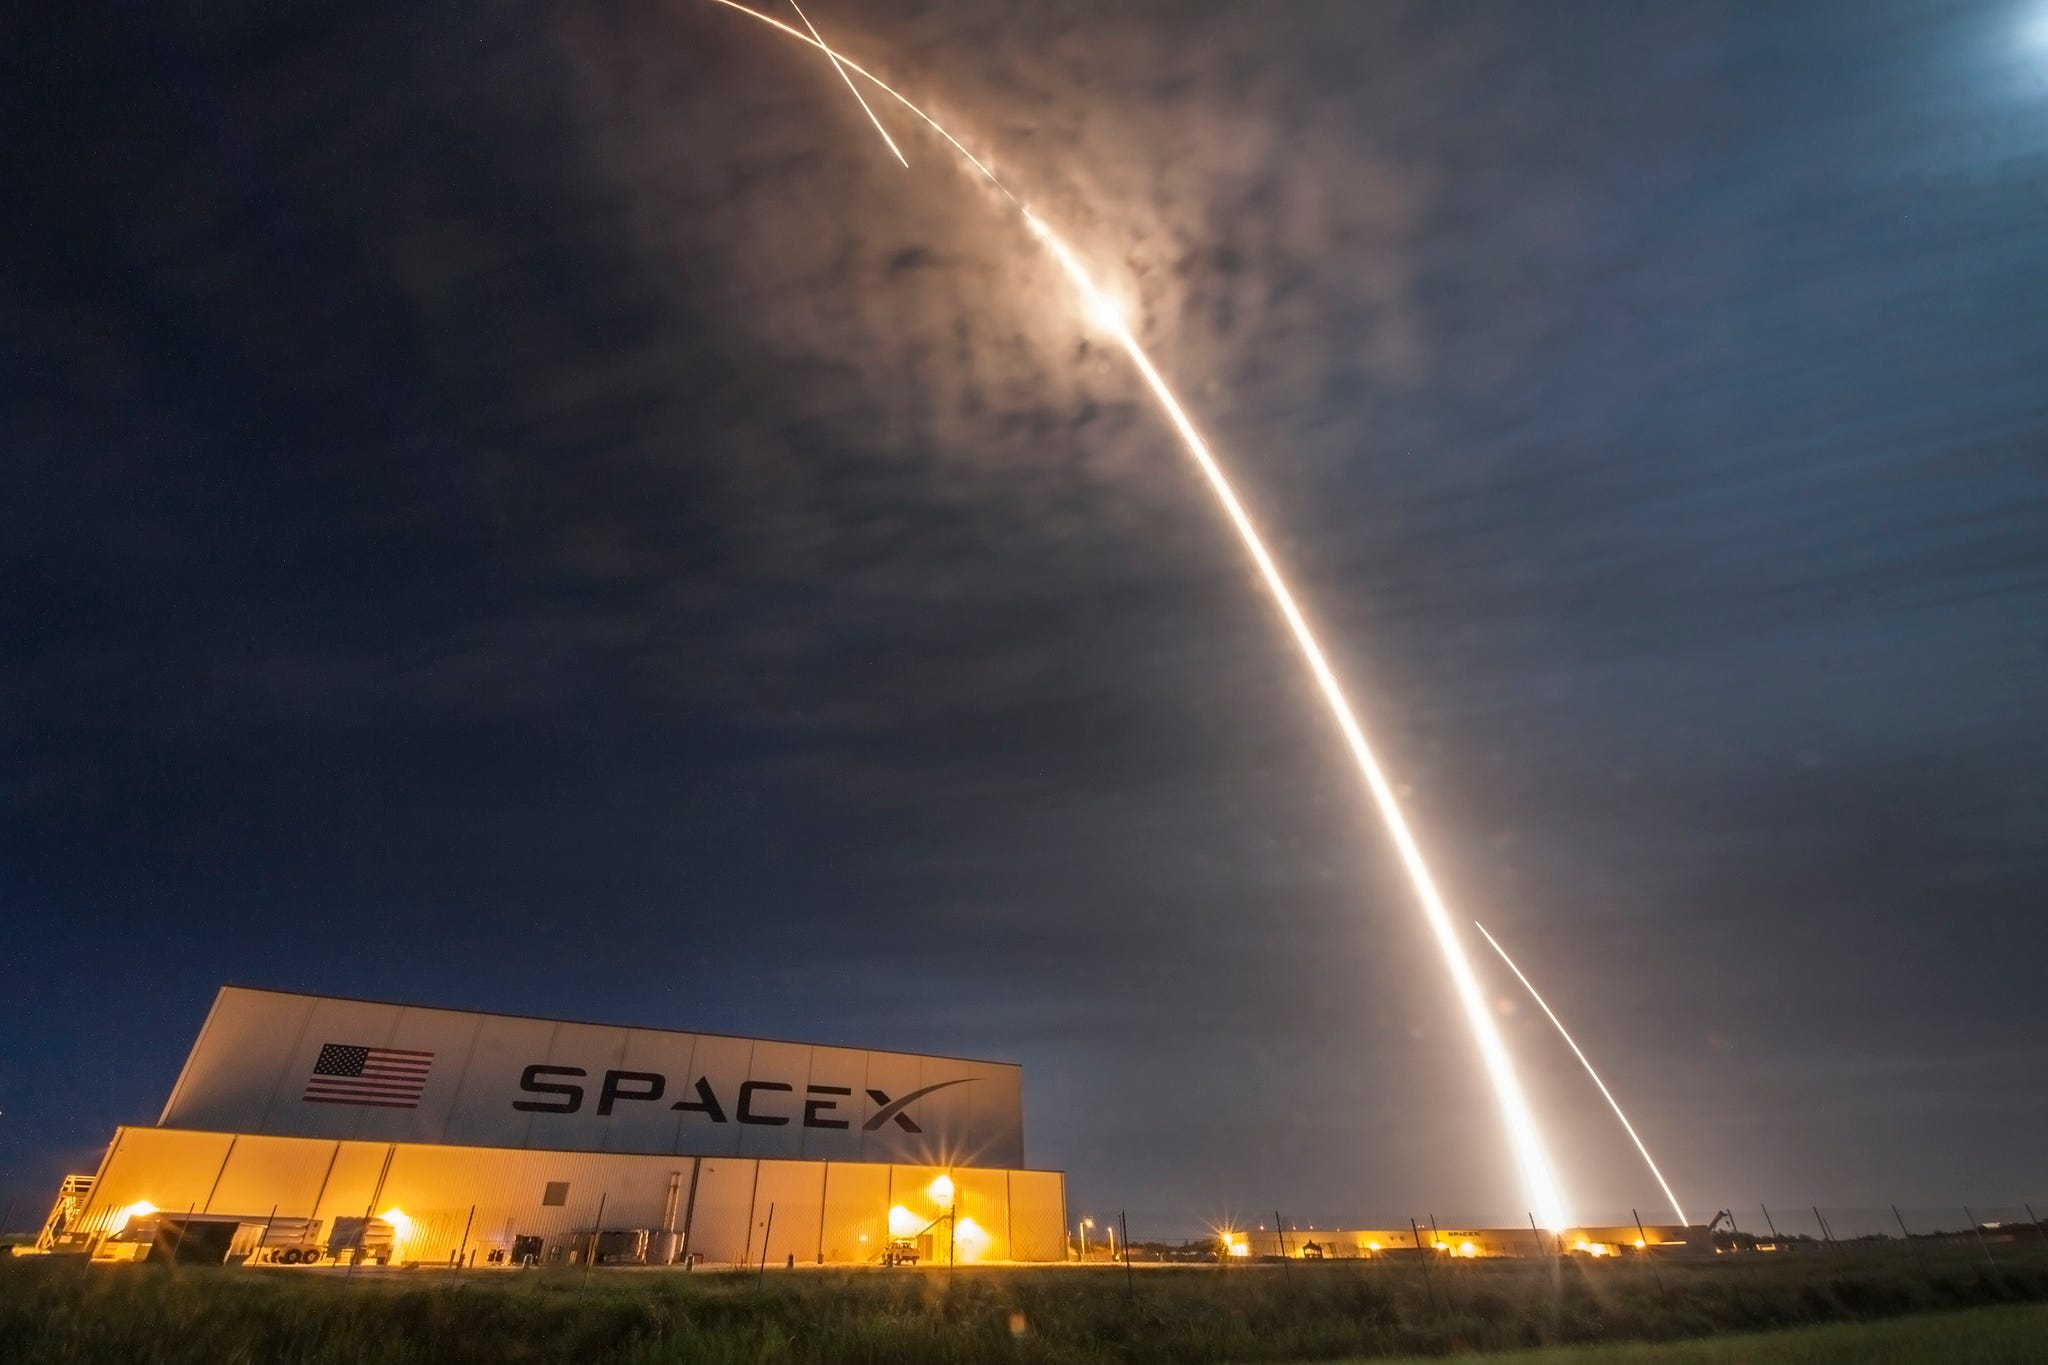 636480652301068648-spx-crs9-launch-land-streak-kscview SpaceX now targeting Dec. 12 launch of ISS supplies from Cape Canaveral